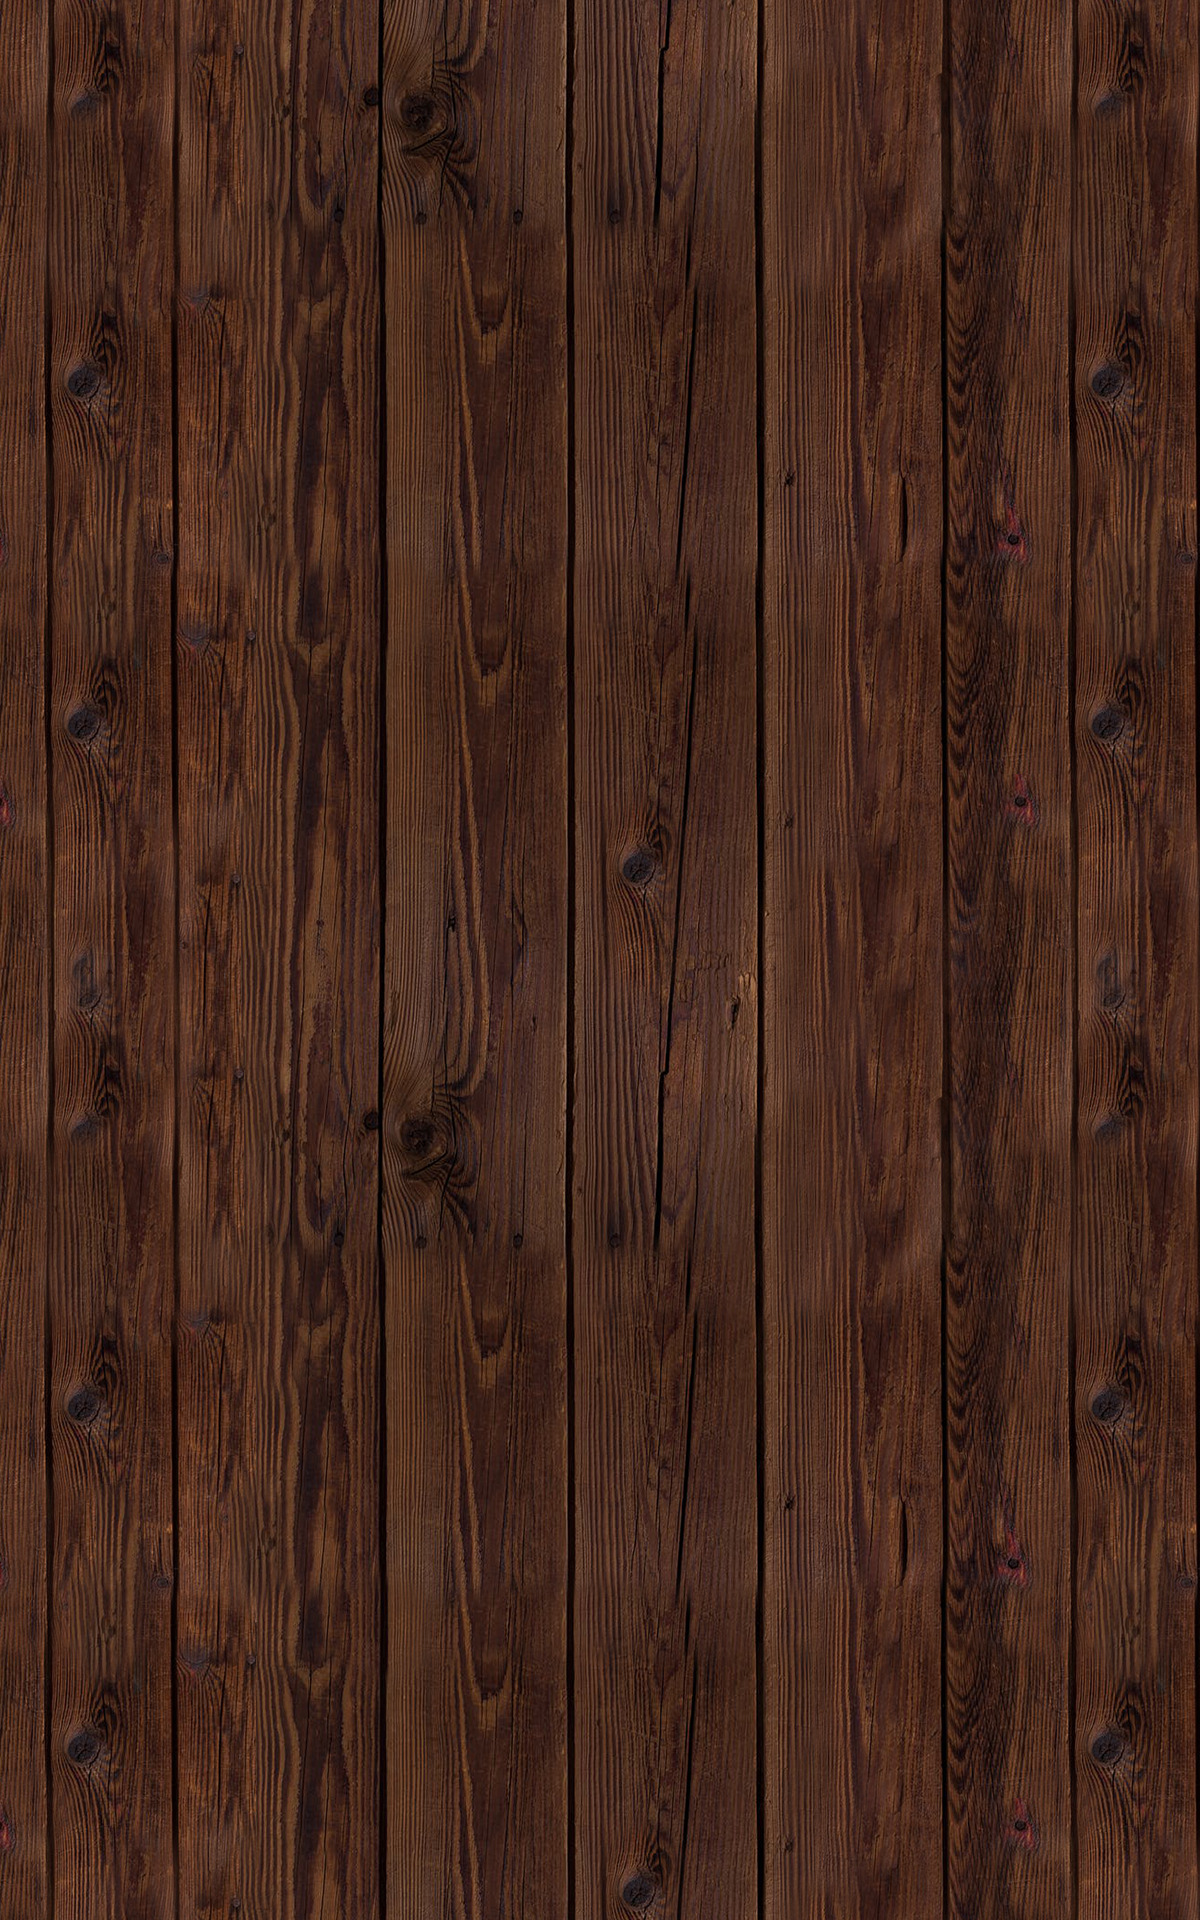 Dark Parquet Download Royalty Free Texture